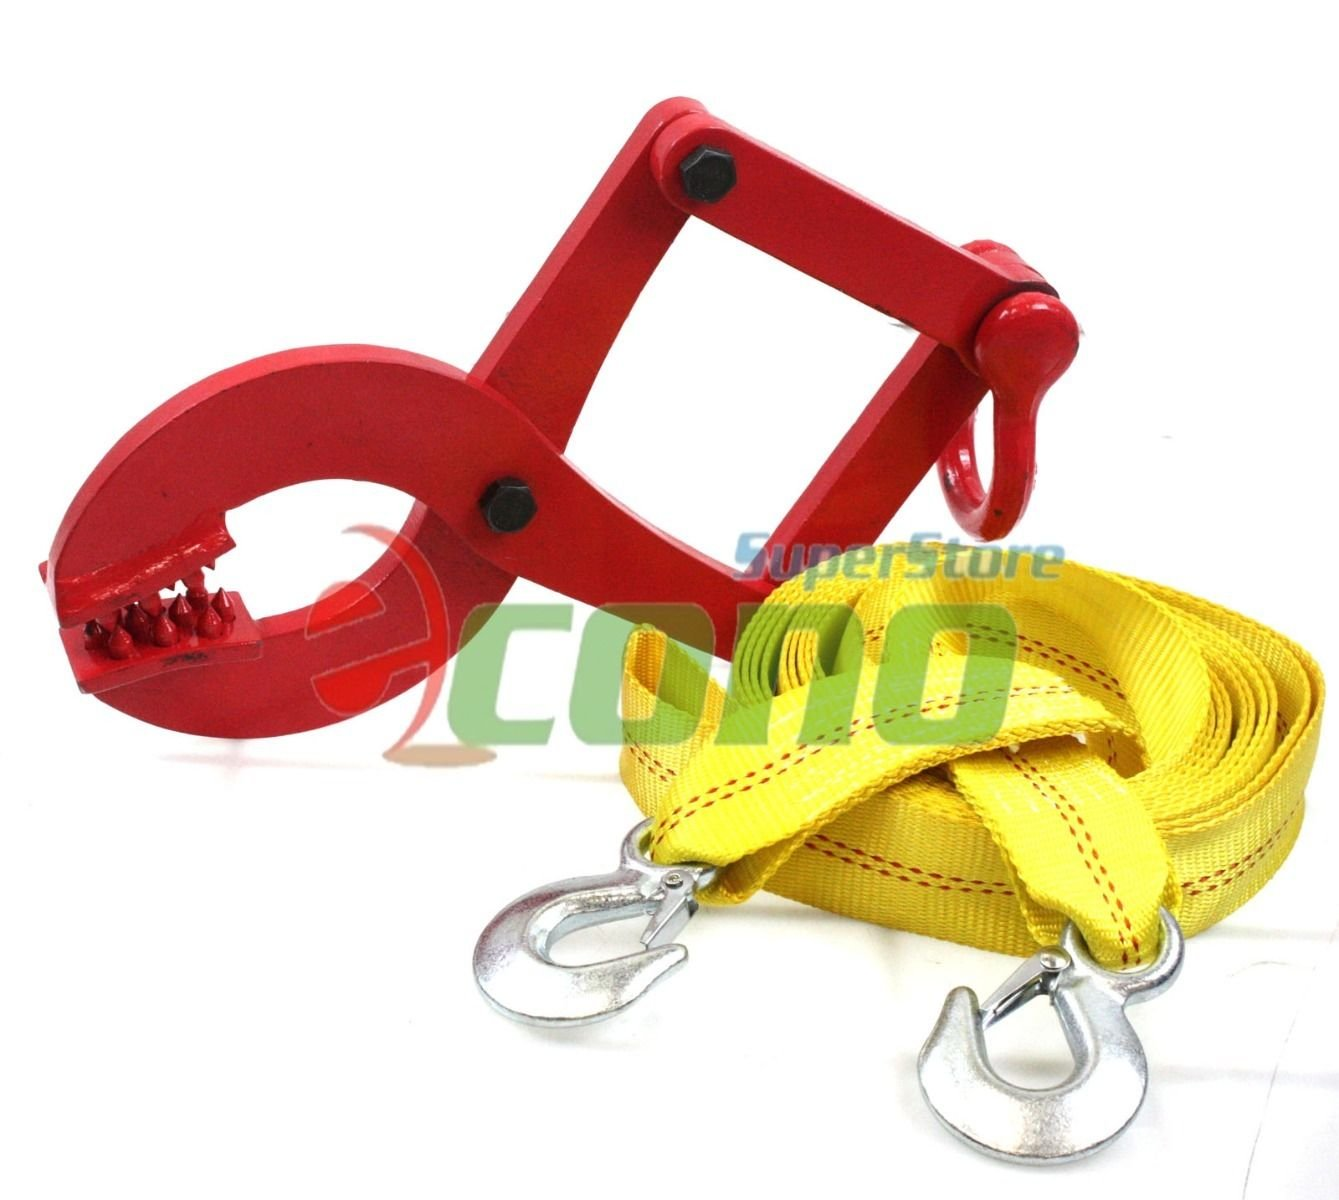 1 Ton Truck Pallet Pulling Scissor Clamp Puller Grip Gripper W/ 20ft Tow Strap by Generic